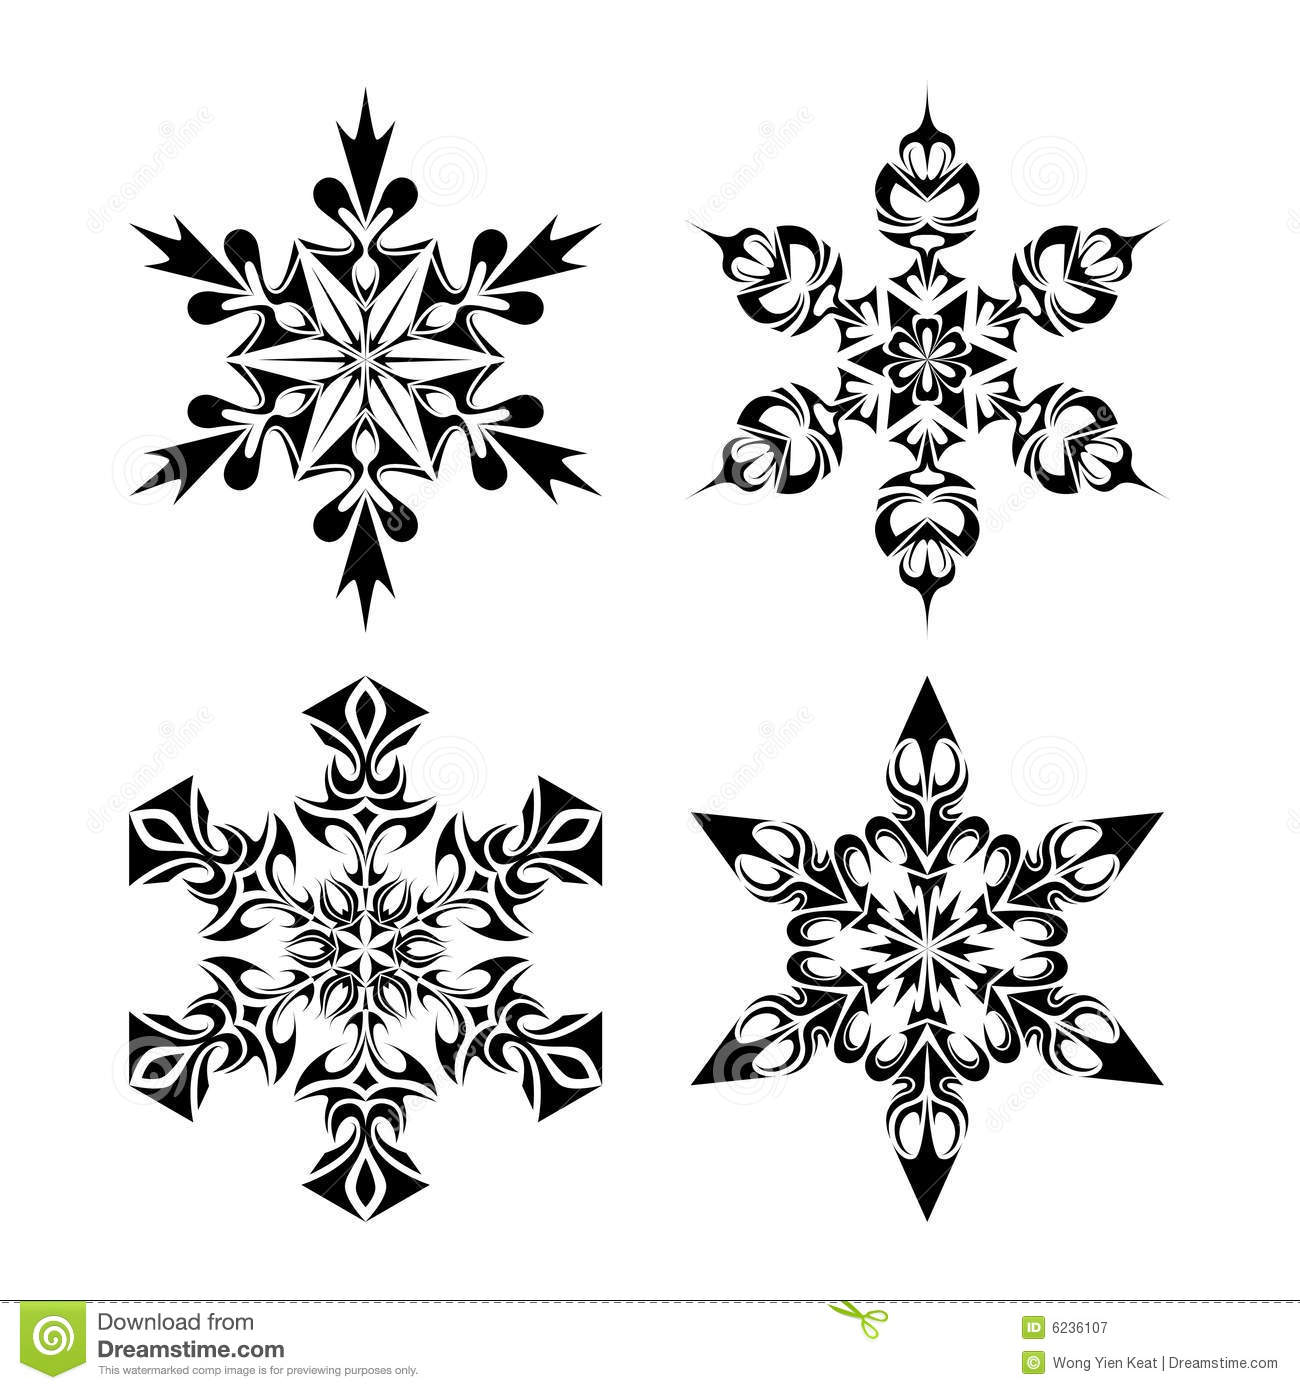 map paper with Royalty Free Stock Photography Tribal Snow Flakes Image6236107 on Post simple Paper Doll Template 133718 further 3758953633 furthermore Geometric World Map in addition 1377632394645 besides Paper Dolls.